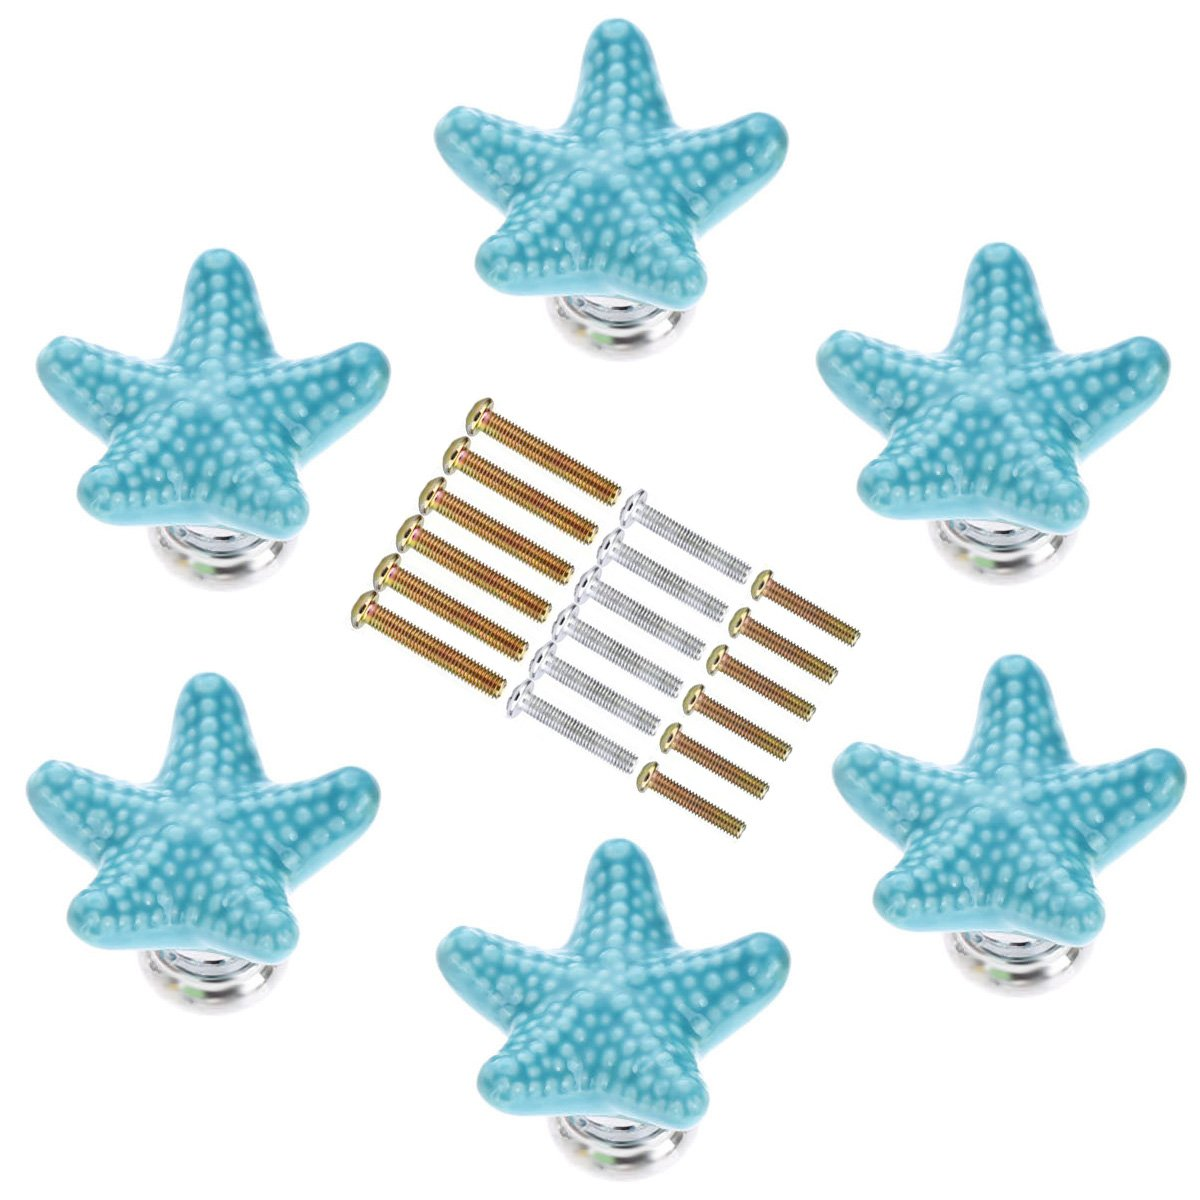 Corasays Starfish Shape Drawer Cupboard Pulls Handles Wardrobe Drawer Cabinet Door Kitchen Knobs and Handles, Pack of 6 (Blue)